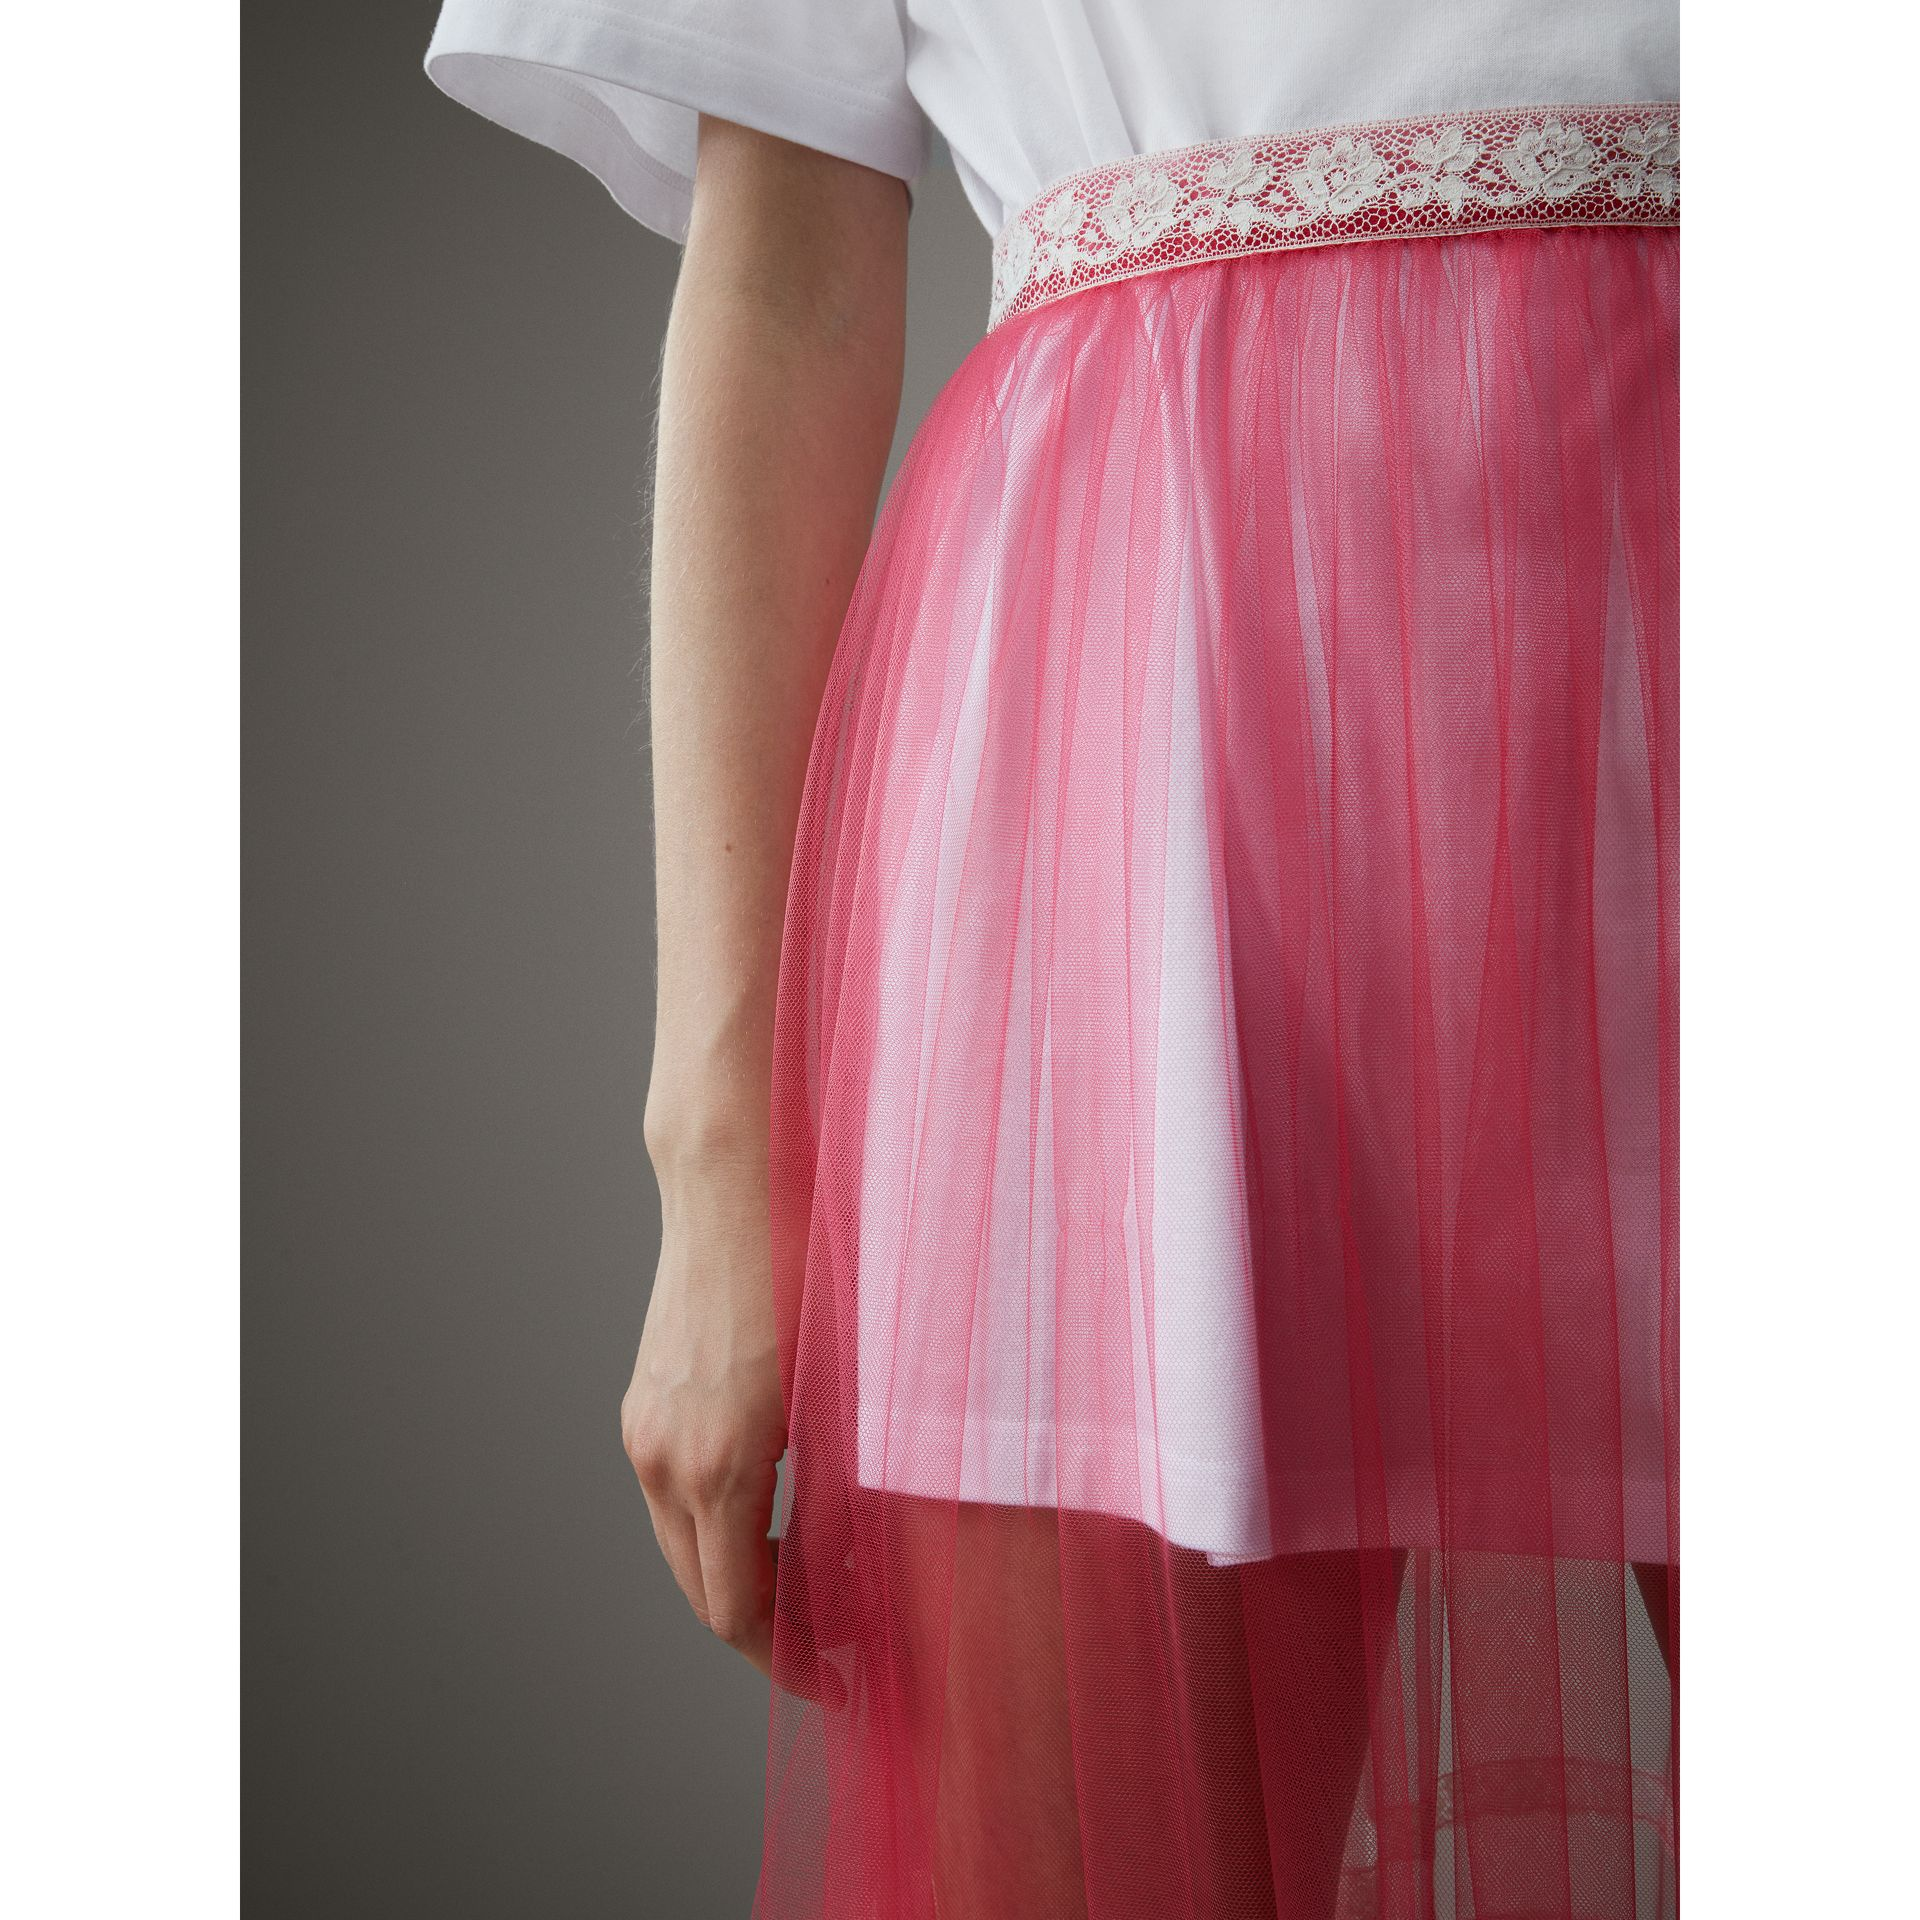 Floor-length English Lace Trim Tulle Skirt in Bright Pink - Women | Burberry Singapore - gallery image 2